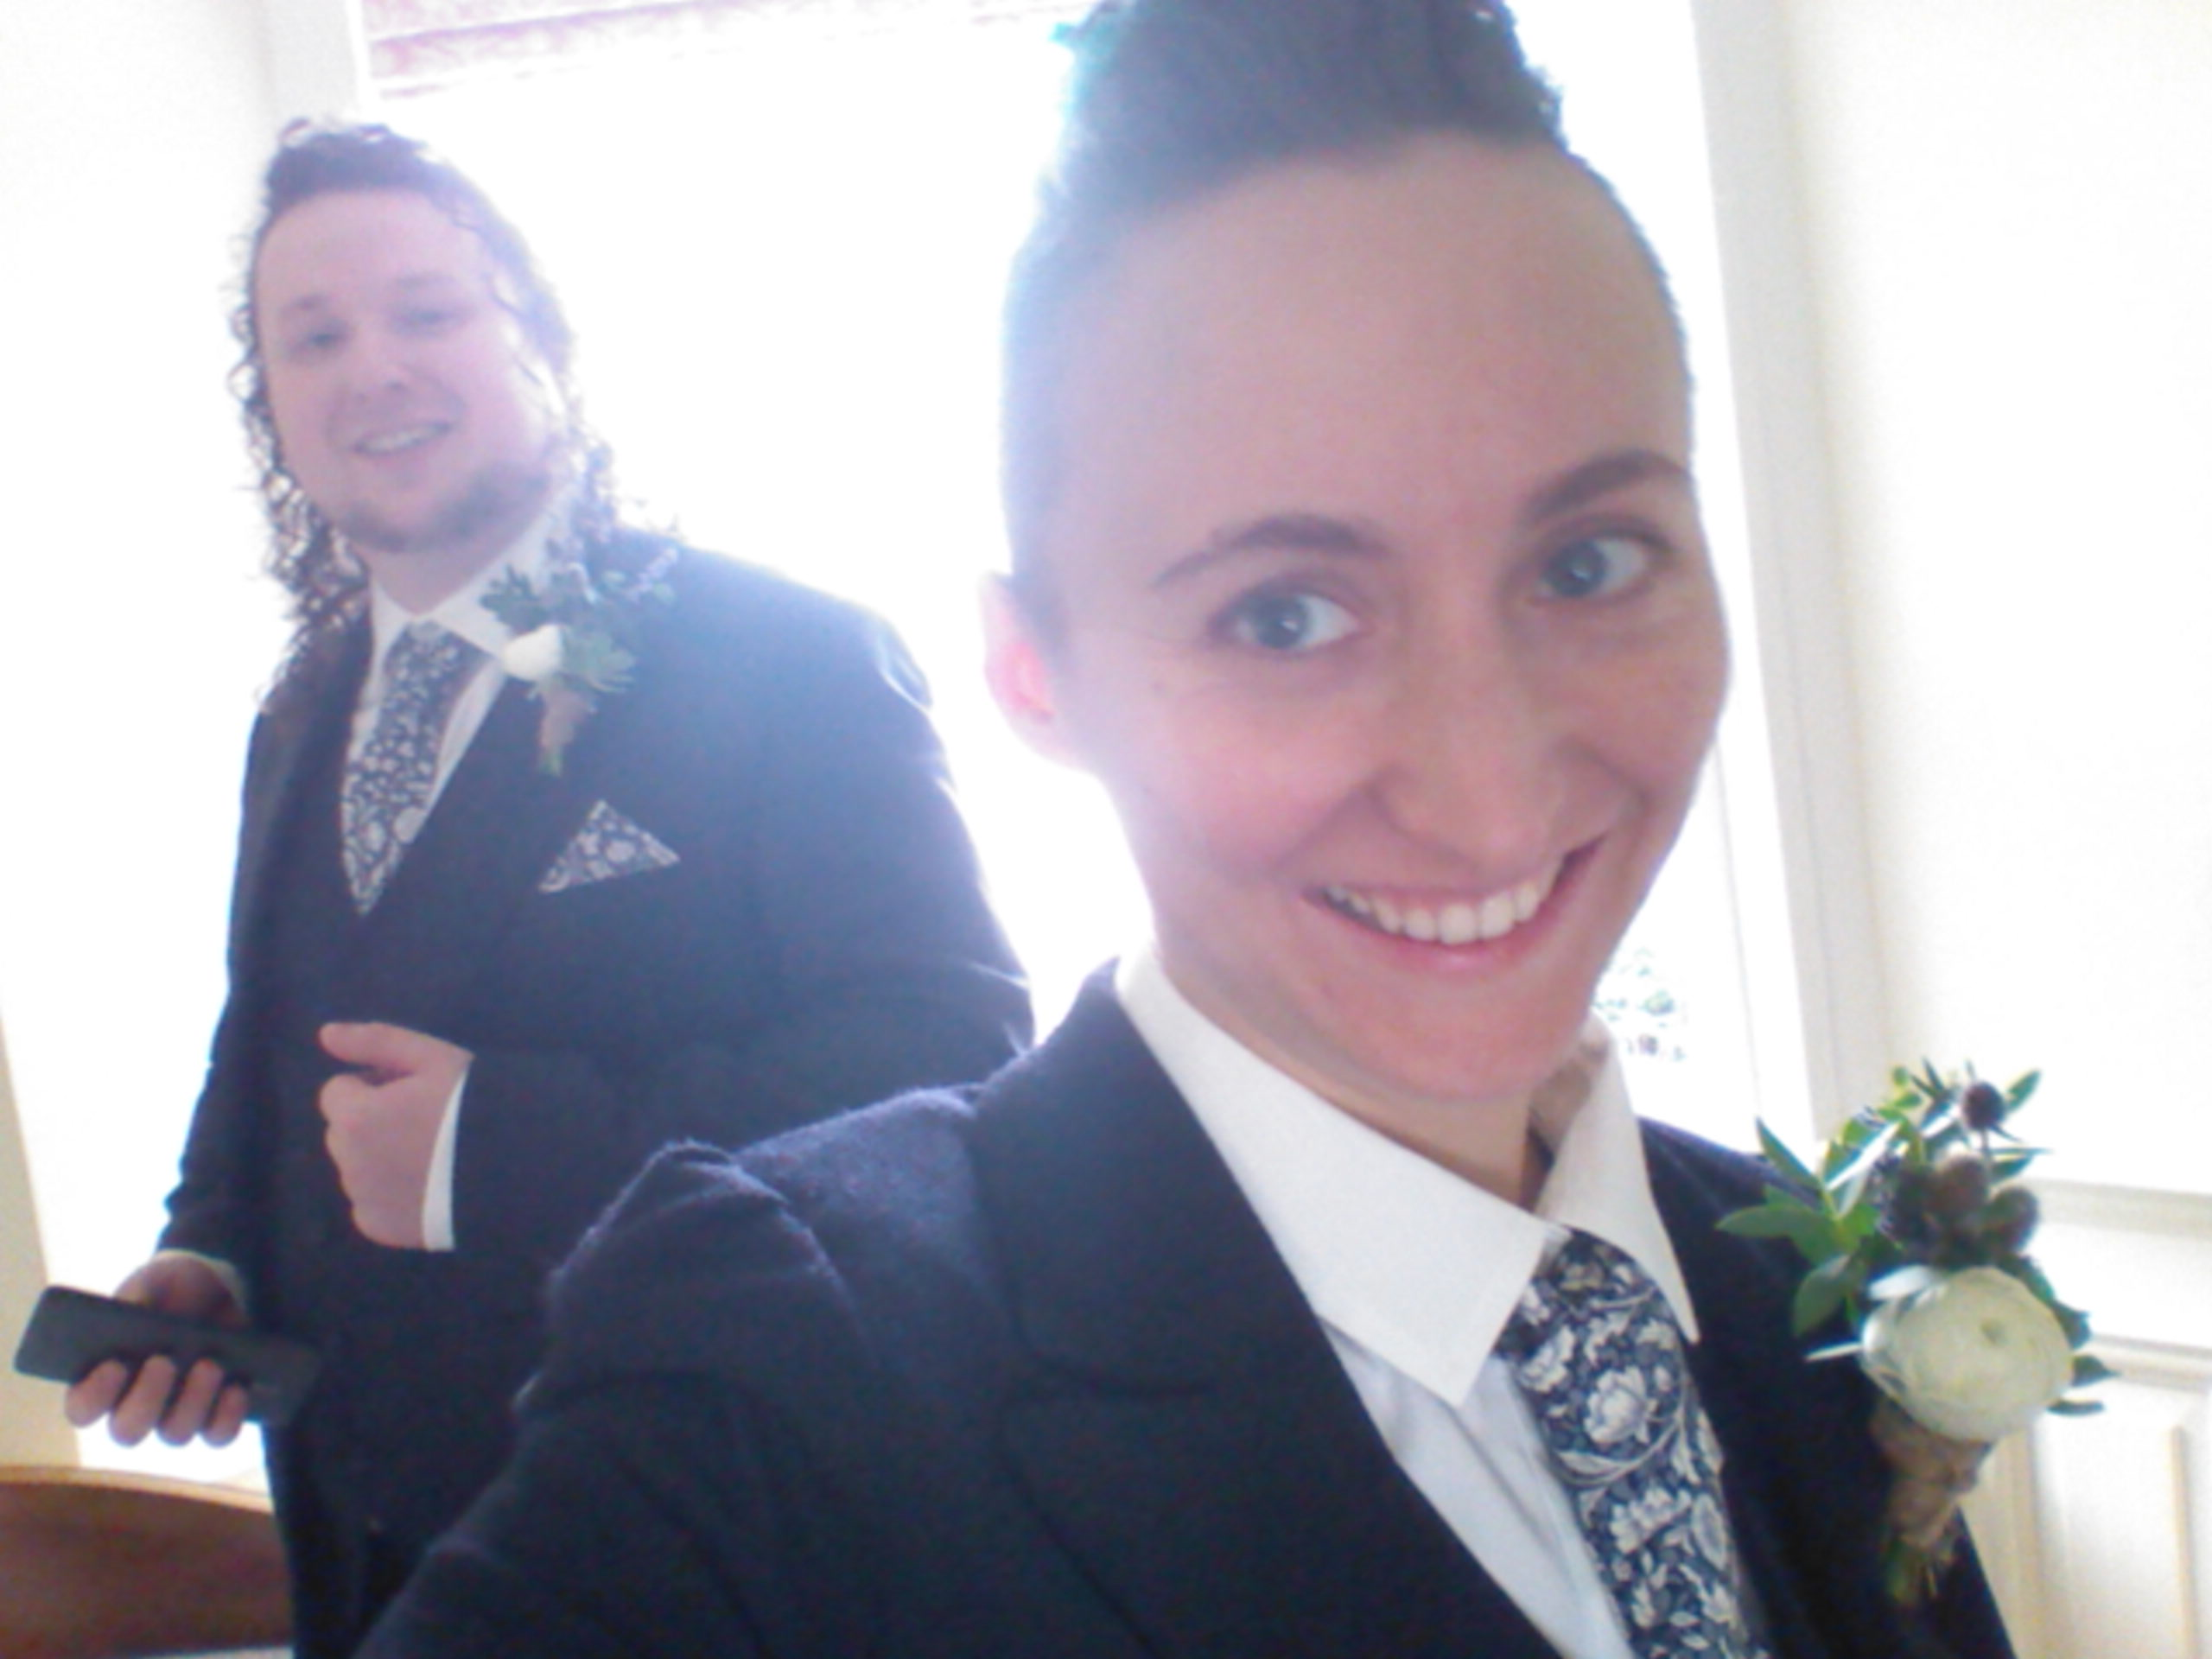 A selfie of two people in navy suits and blue and white ties with flower buttonholes and smiles